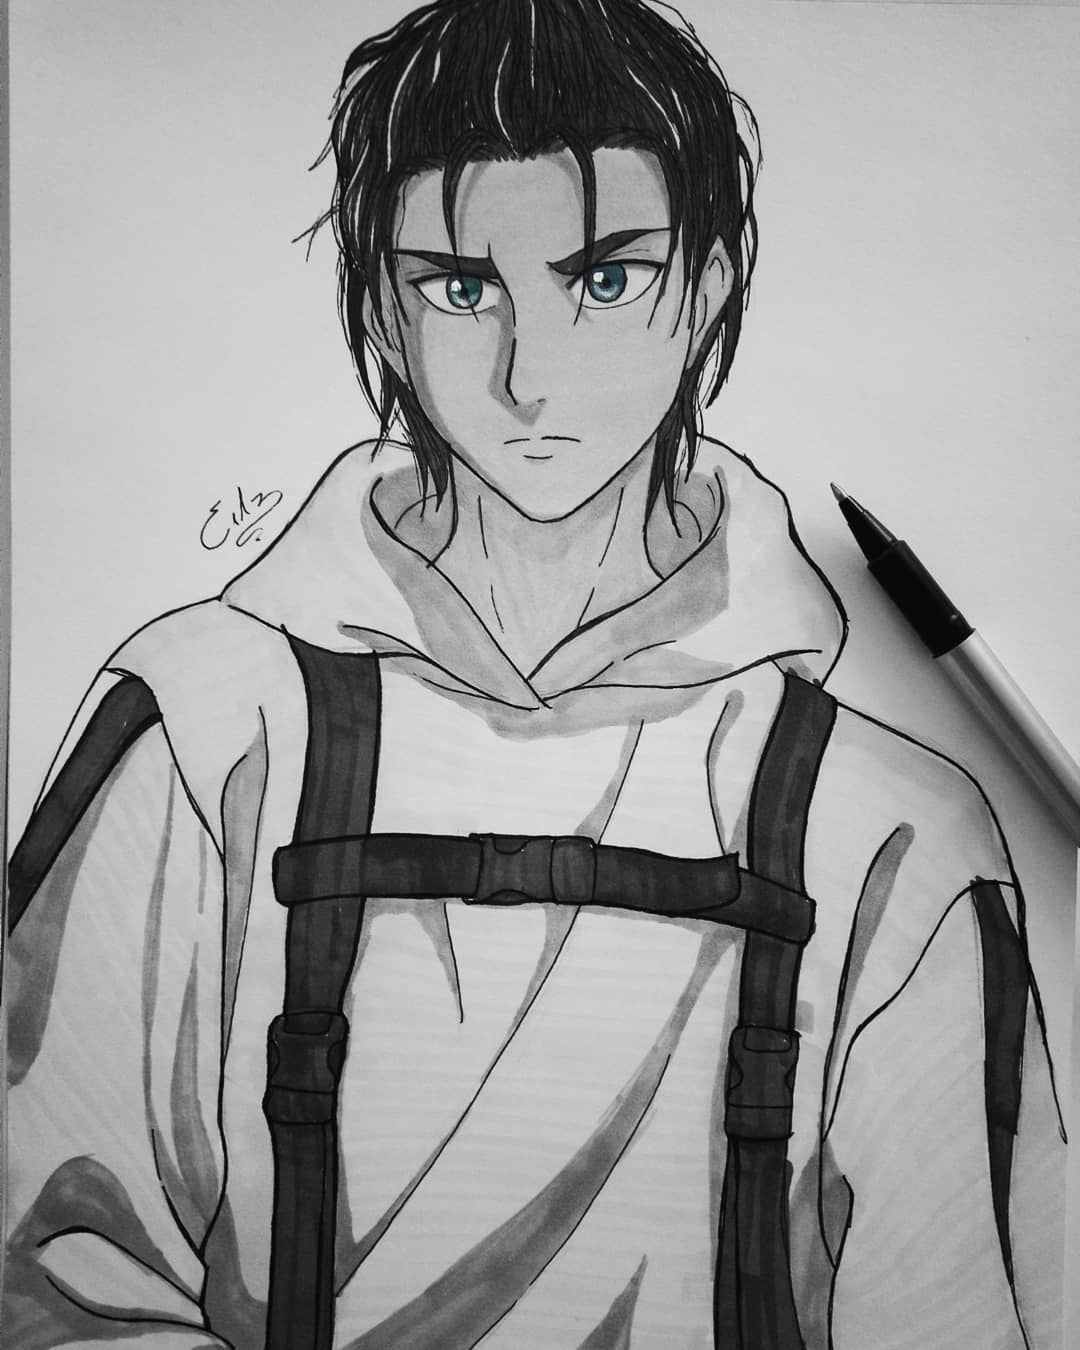 19 Years Old Eren And His Fashion Style Attack On Titan Art Eren Jaeger Fan Art